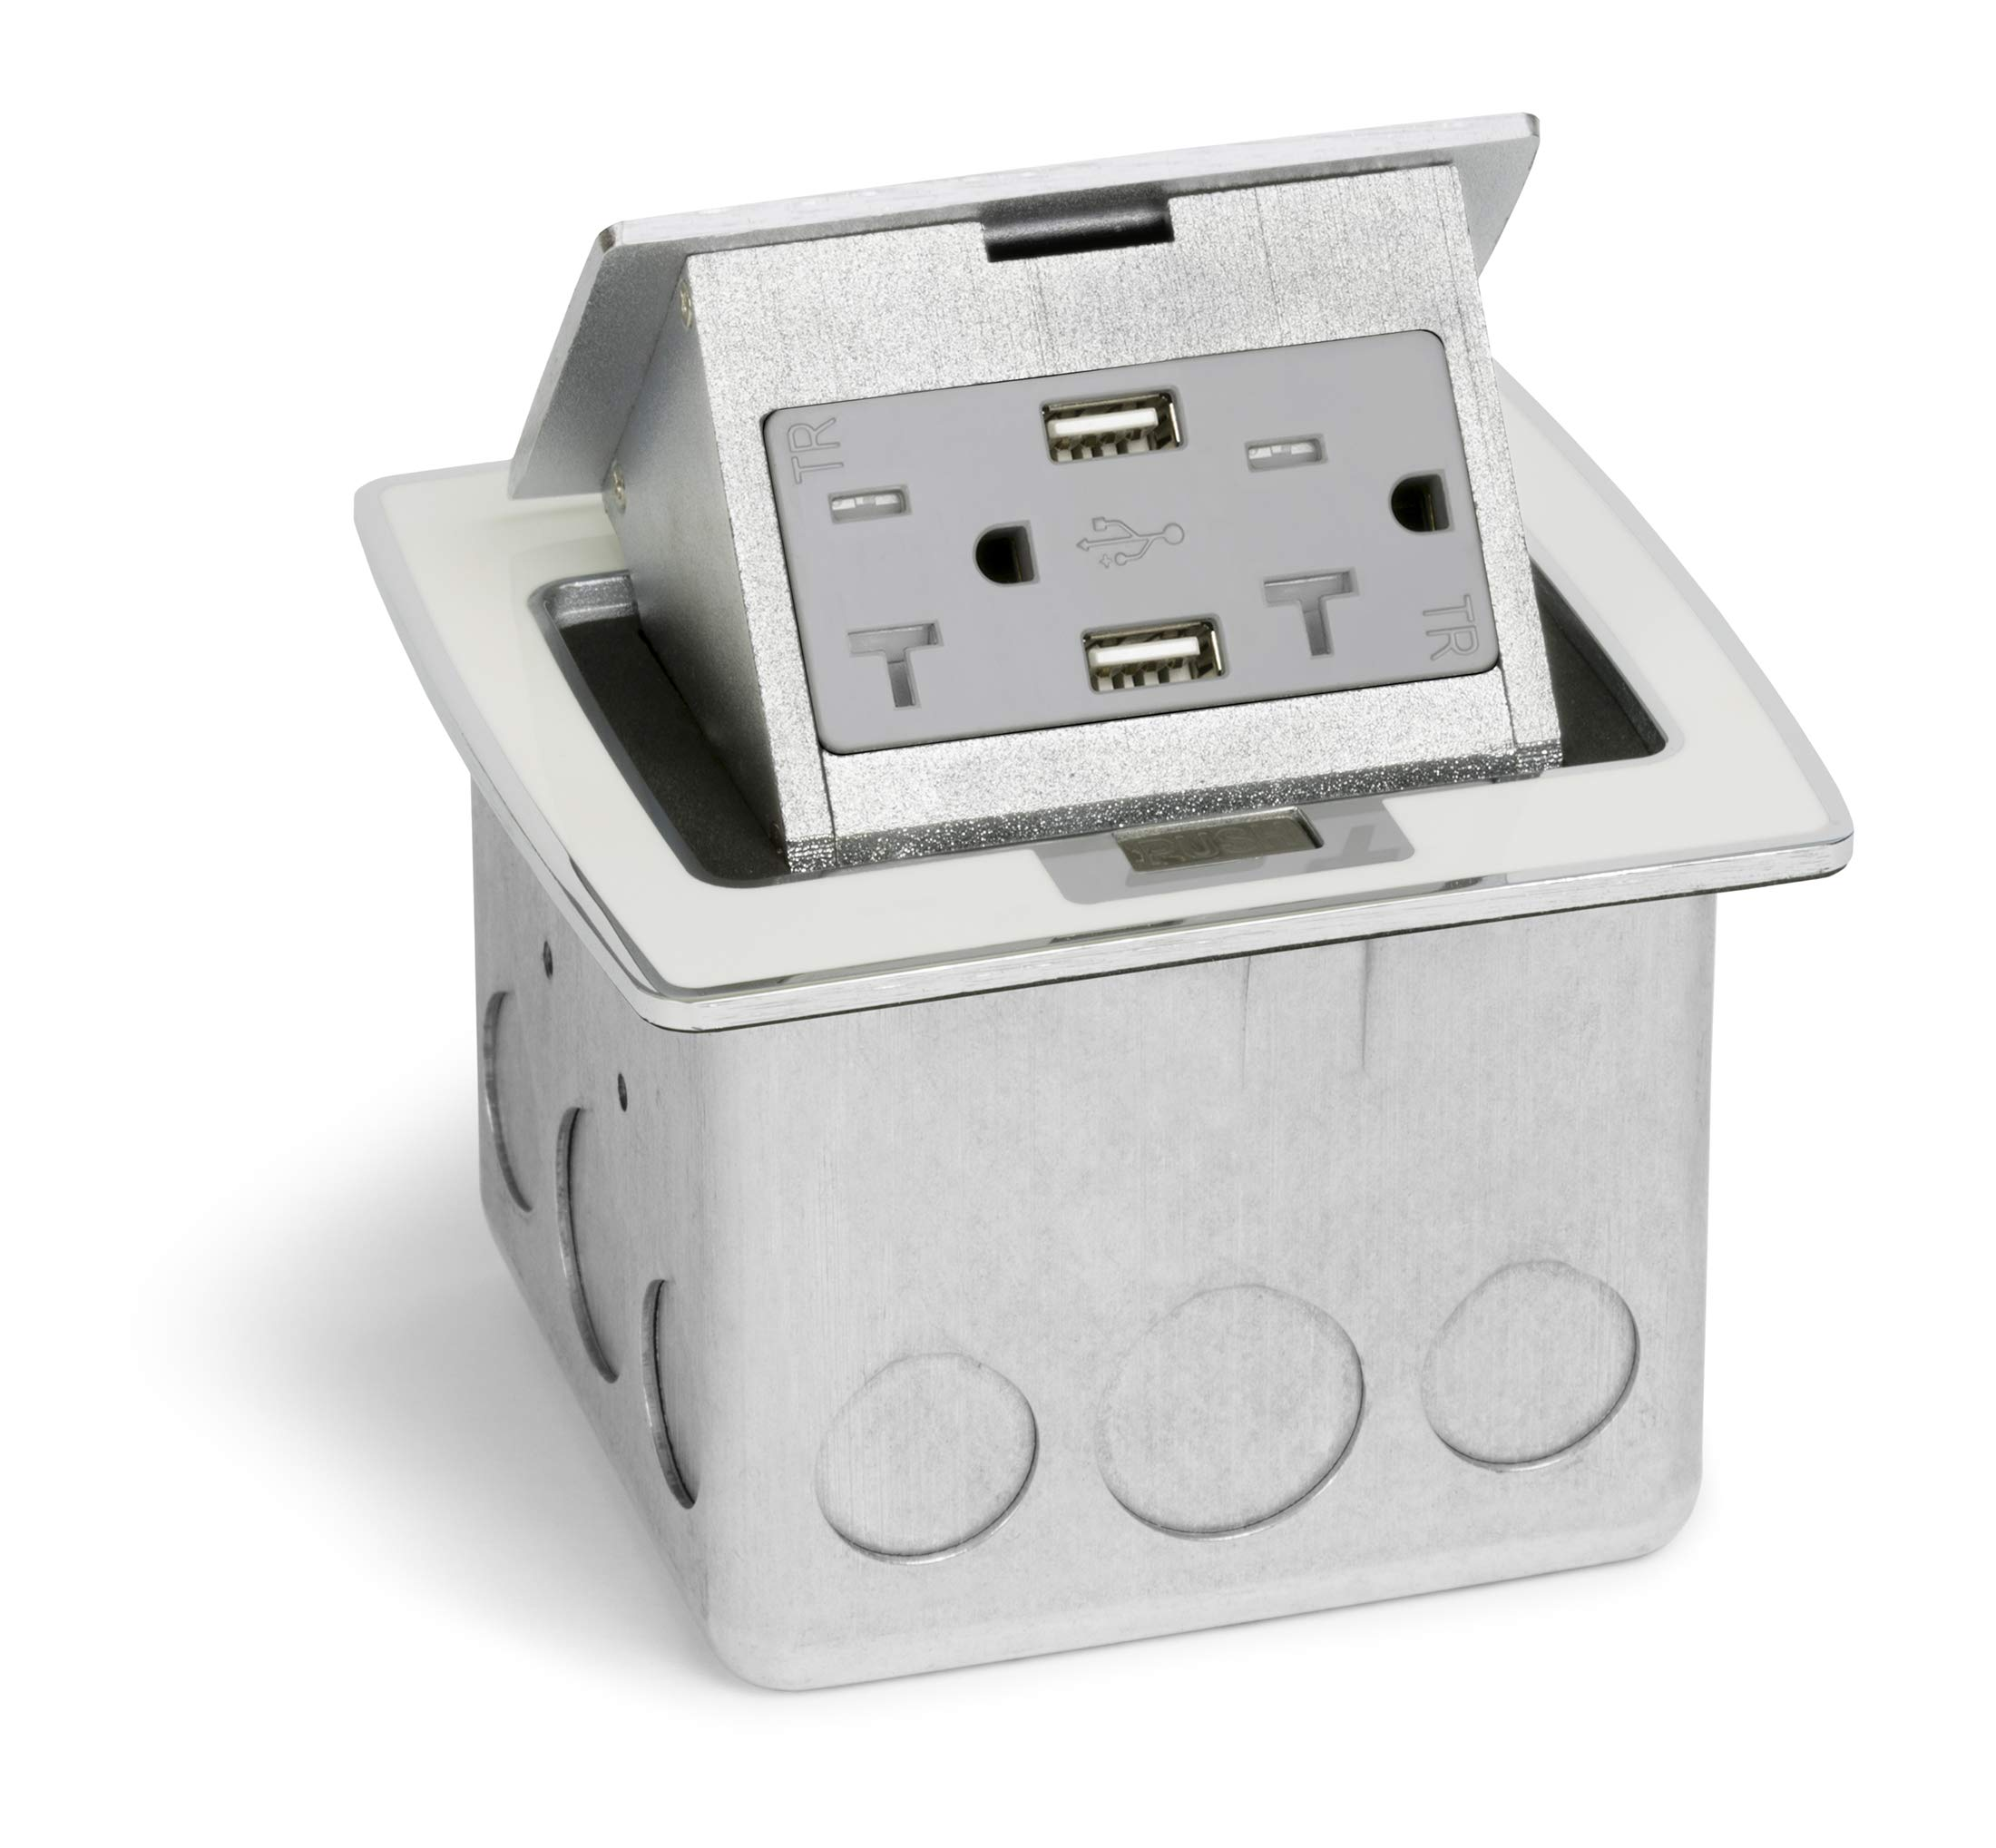 Lew Electric PUFP-CT-OW-20A-2USB Kitchen Countertop Pop Up 20A Outlet with USB Charging- Off White